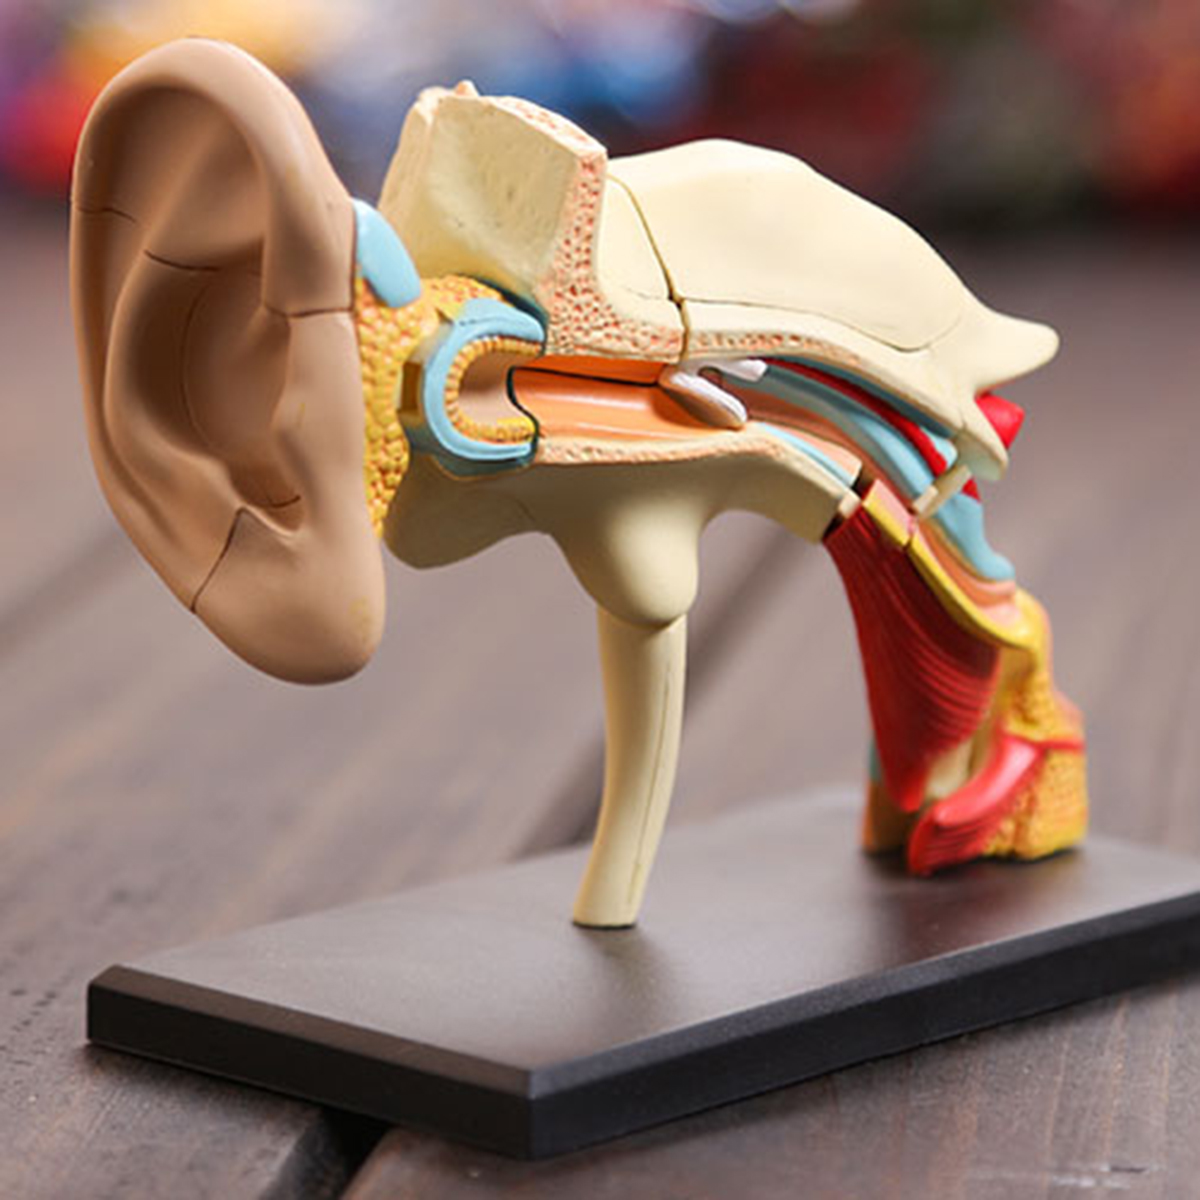 4d Vision Human Ear Anatomy Model Anatomical Medical Le For Sale